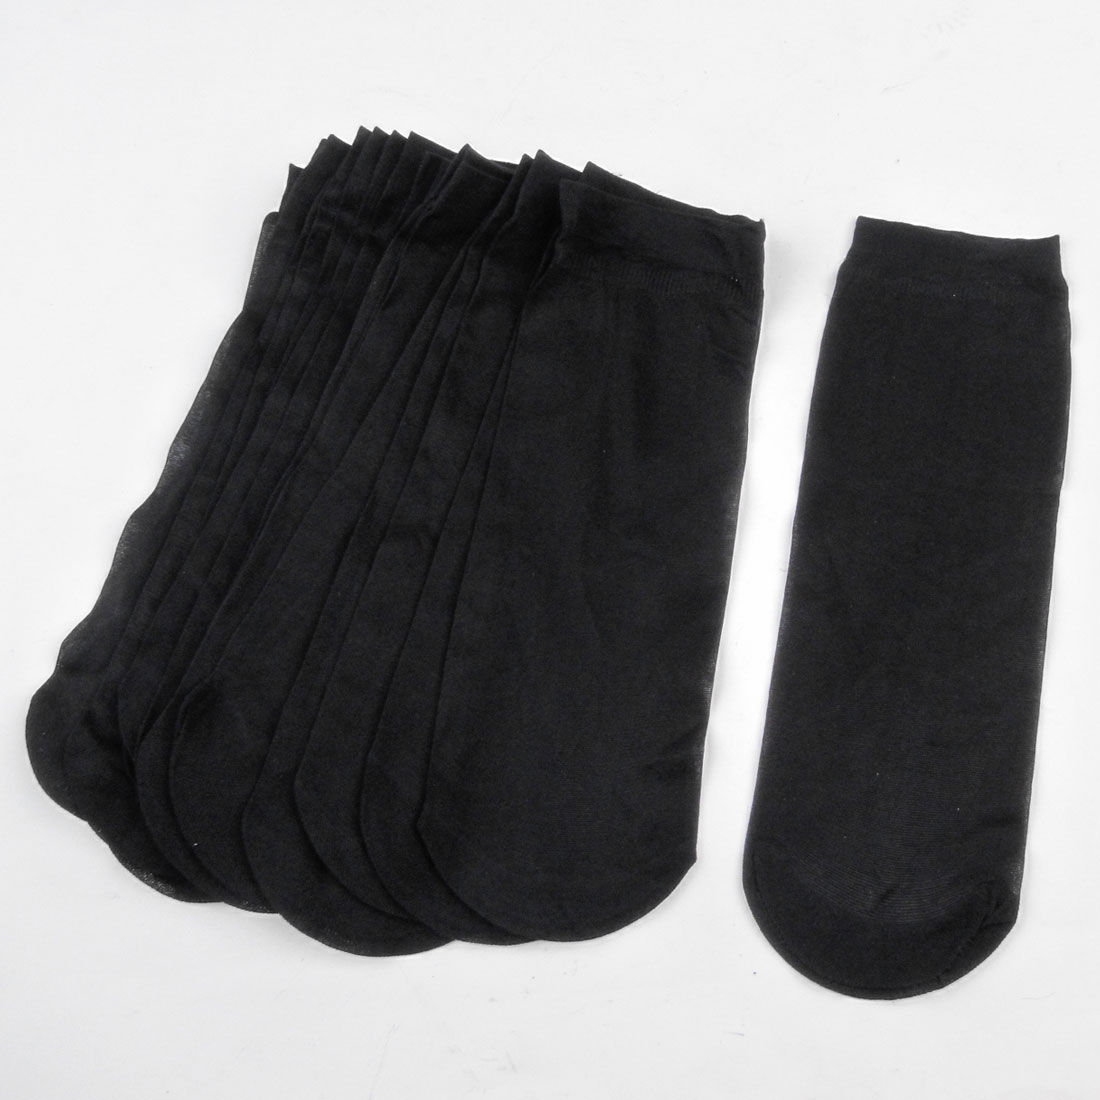 10 Pairs Soft Elastic Black Sheer Socks for Ladies